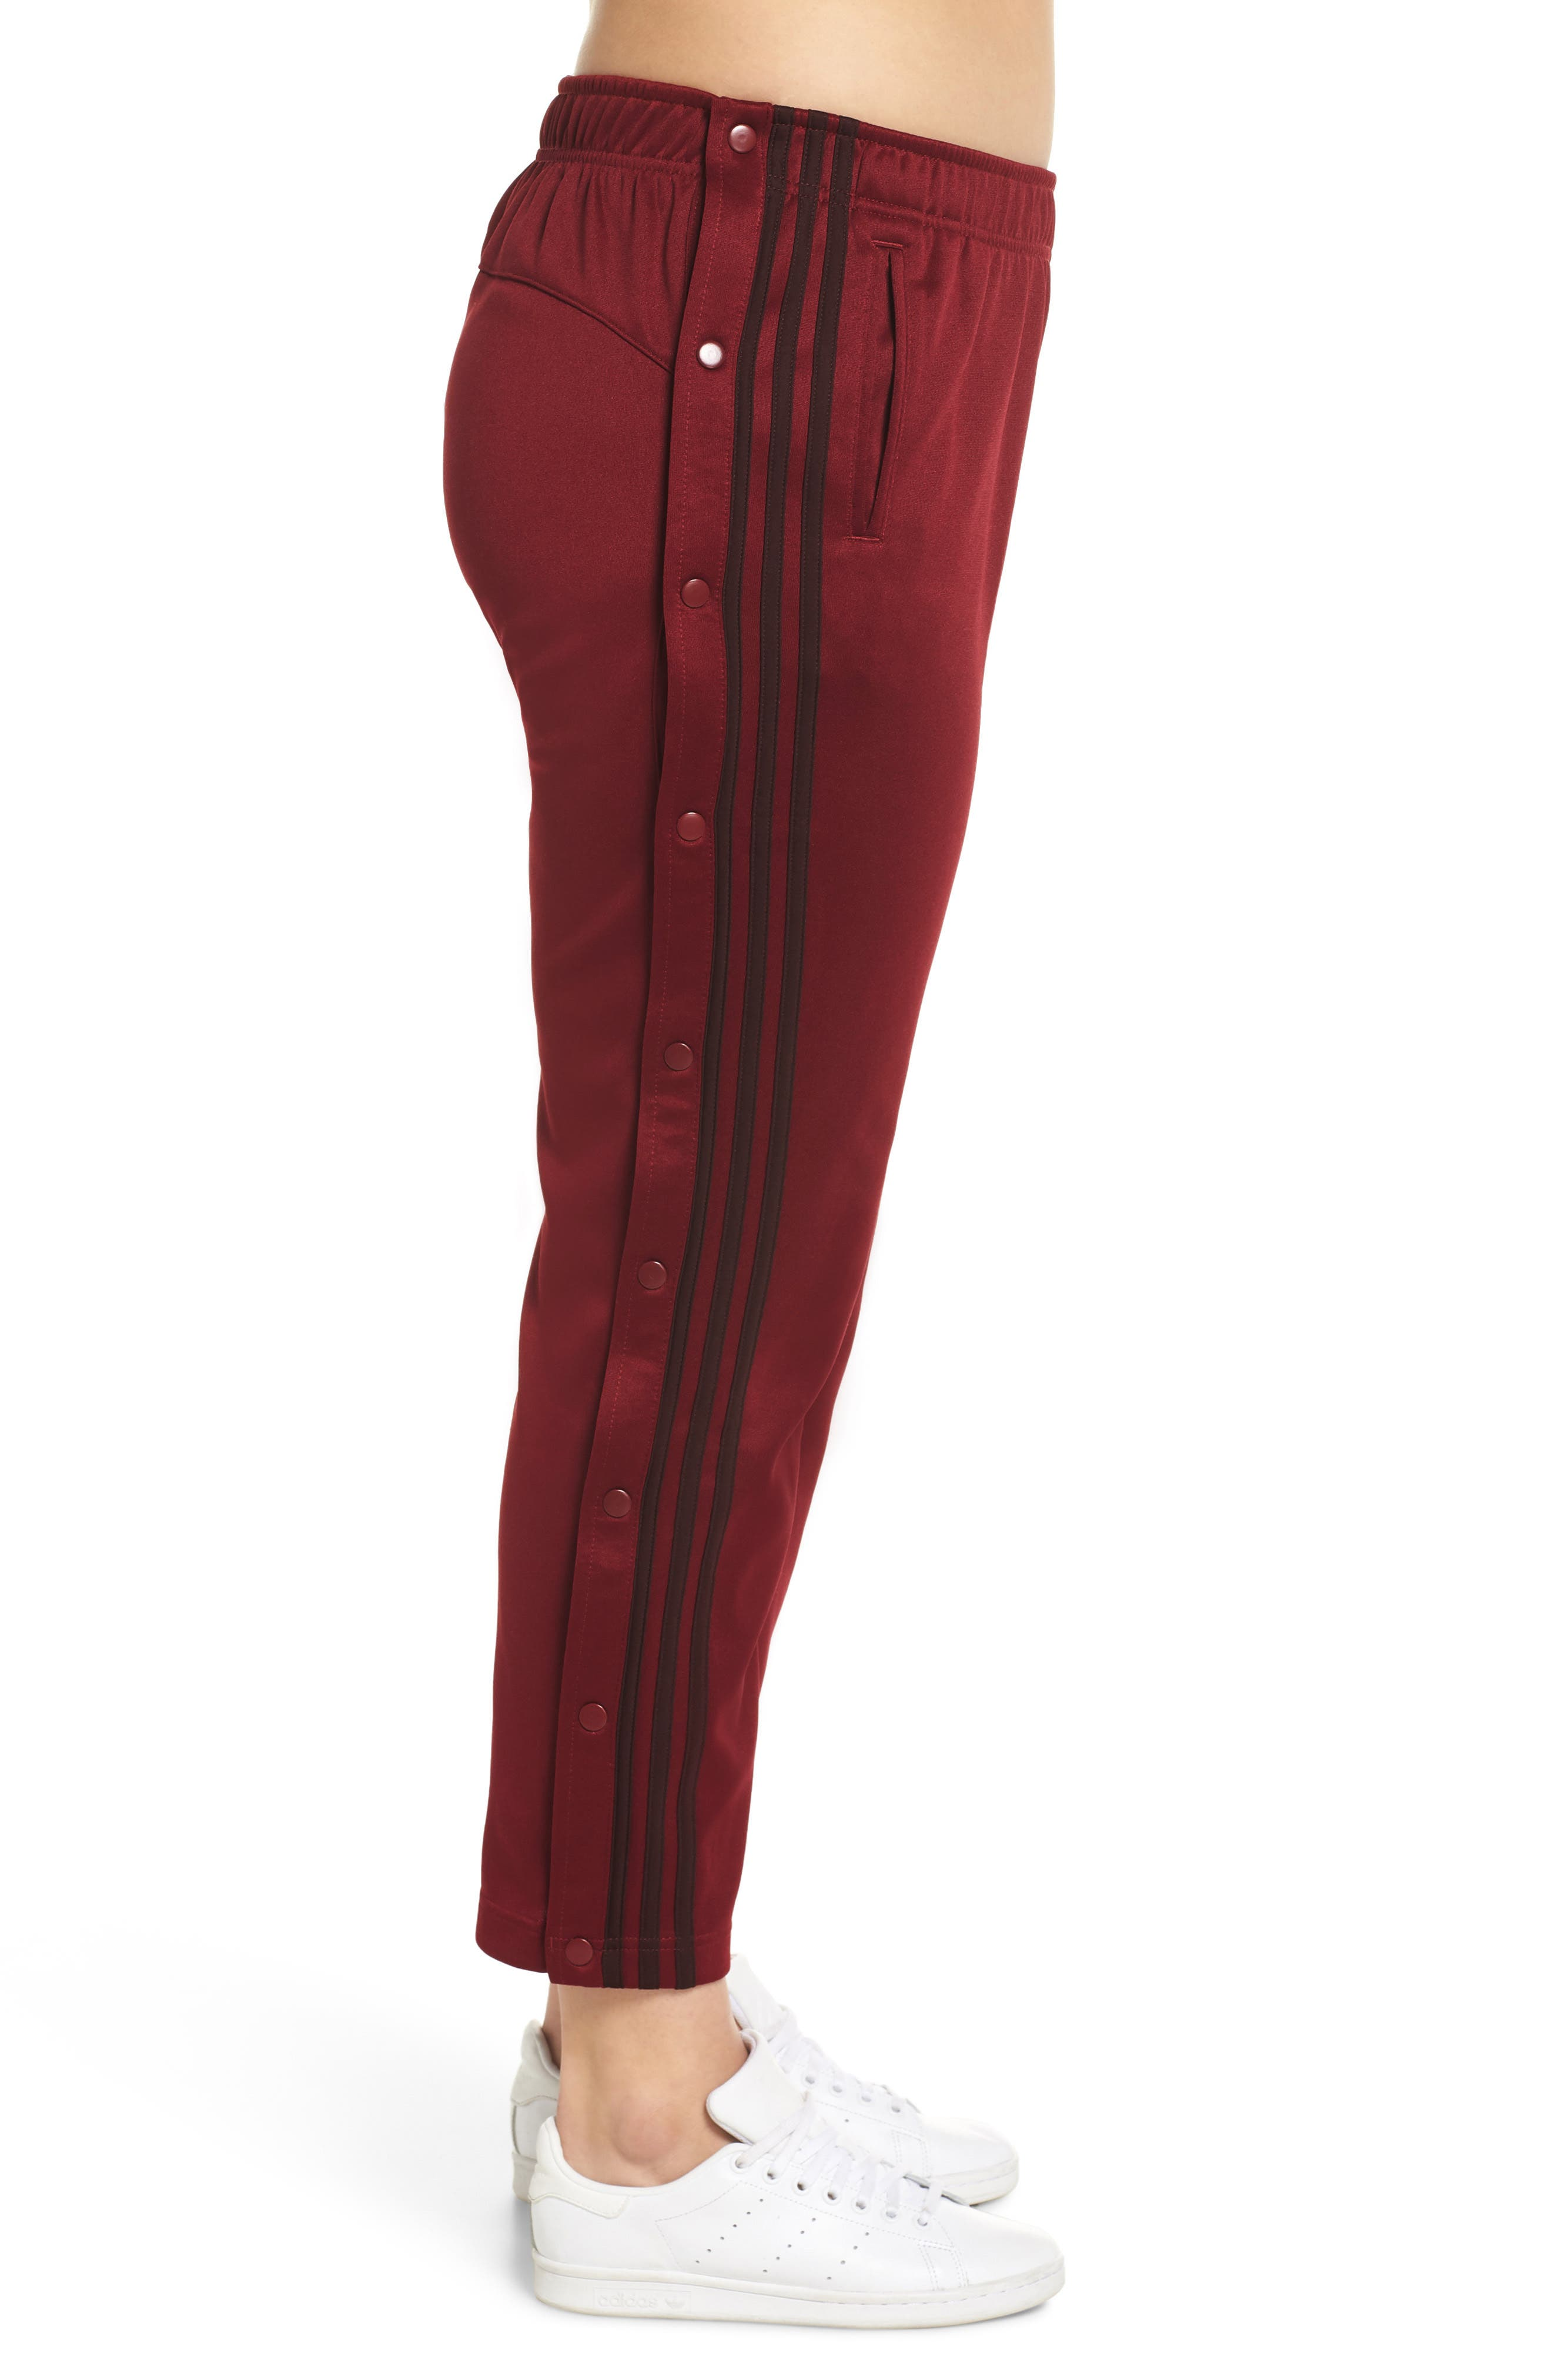 Tricot Snap Pants,                             Alternate thumbnail 9, color,                             NOBLE MAROON/ NIGHT RED